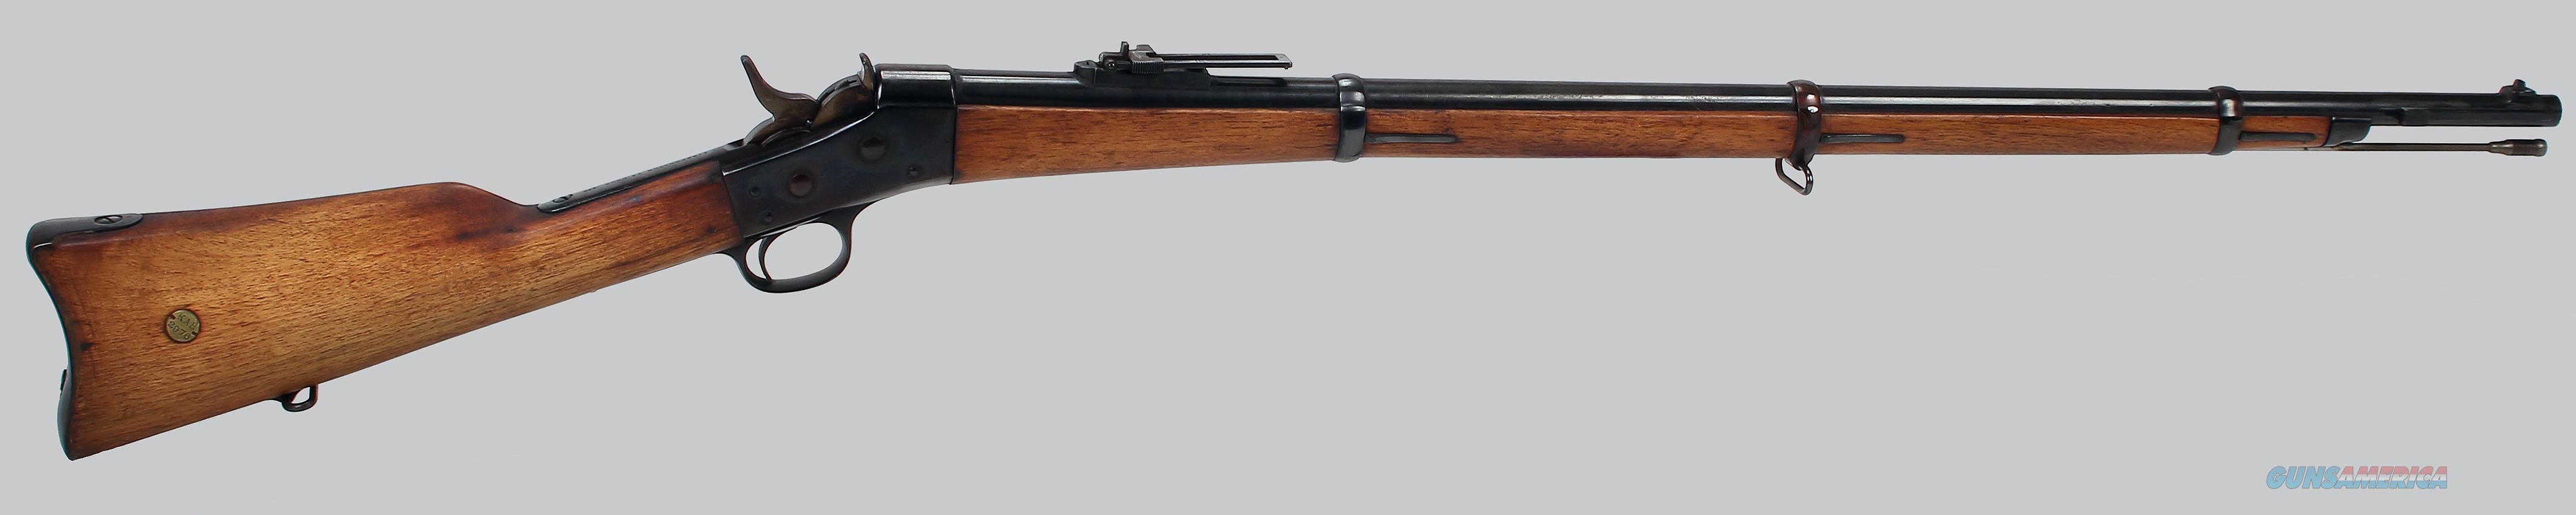 Danish Rolling Block Black Powder Rifle  Guns > Rifles > D Misc Rifles